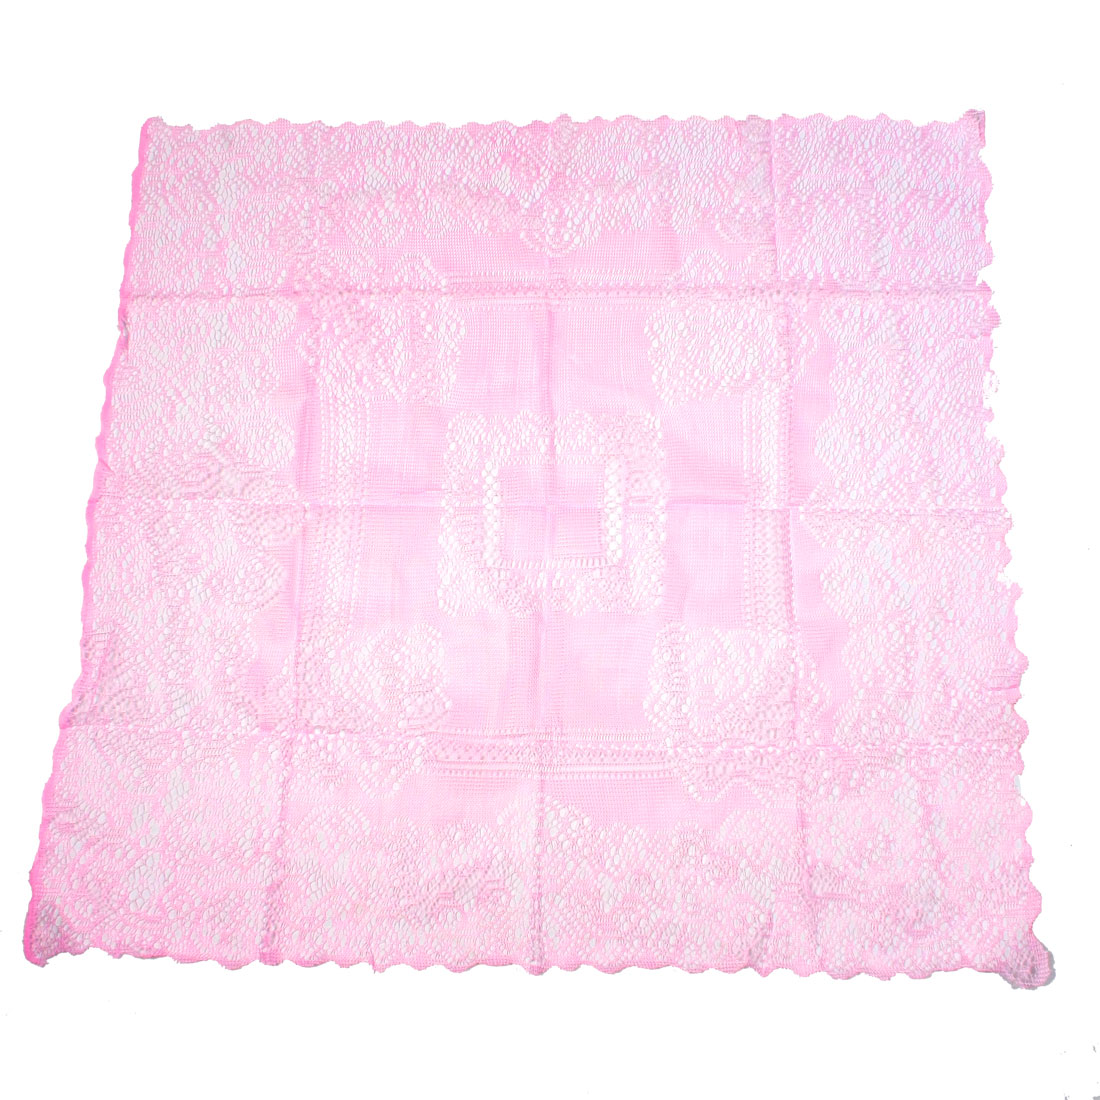 Home Rectangular Pink Nylon TV Cover Meshy Cloth 85cm x 76cm